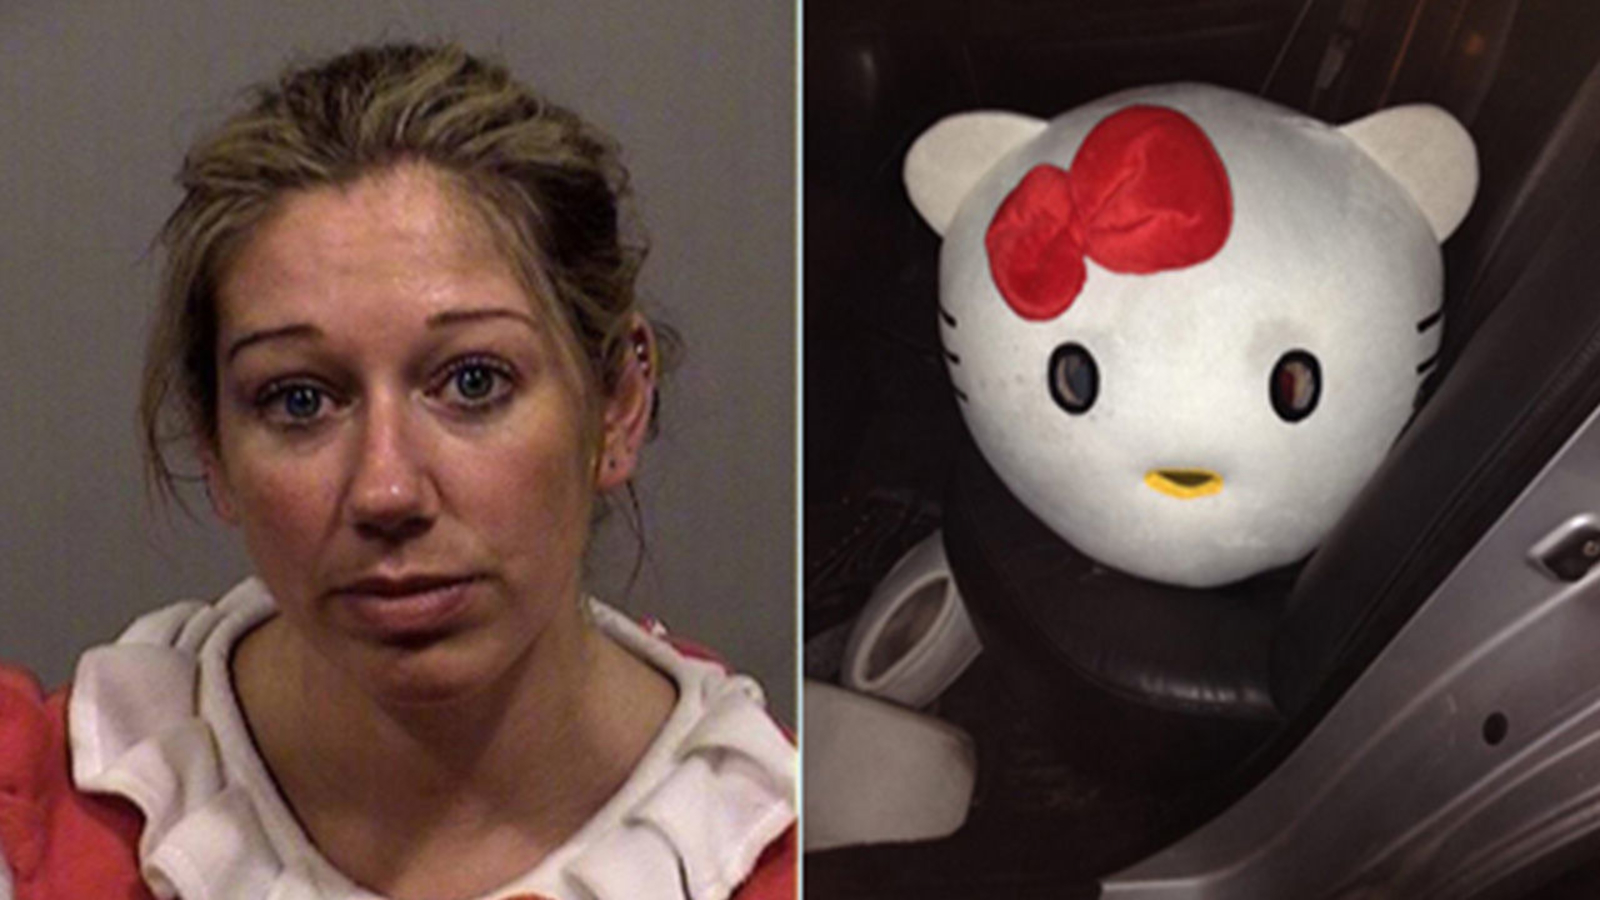 Mugshot: Woman pulled over while wearing Hello Kitty costume, police